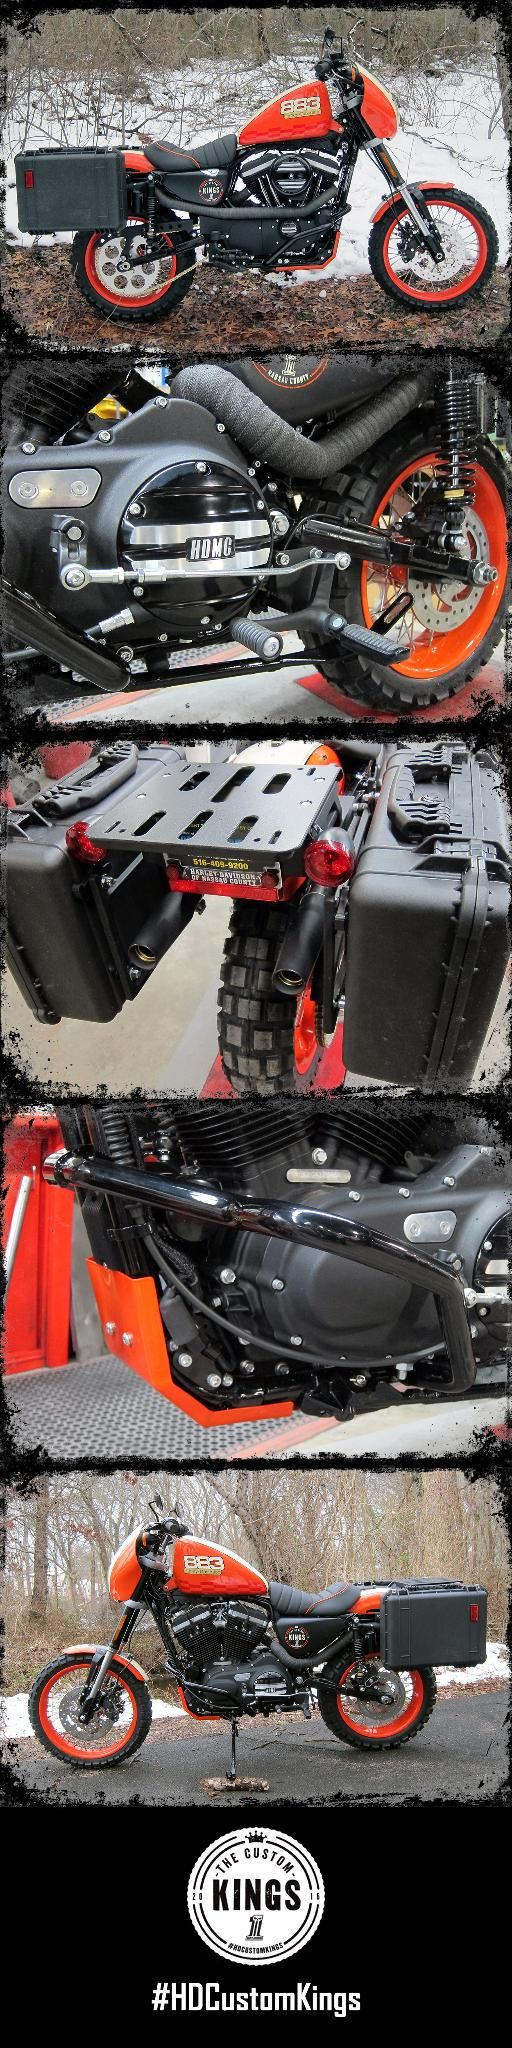 Harley-Davidson of Nassau County's goal was to build an all terrain bike from scratch using a stock Iron 883. | Harley-Davidson #HDCustomKings